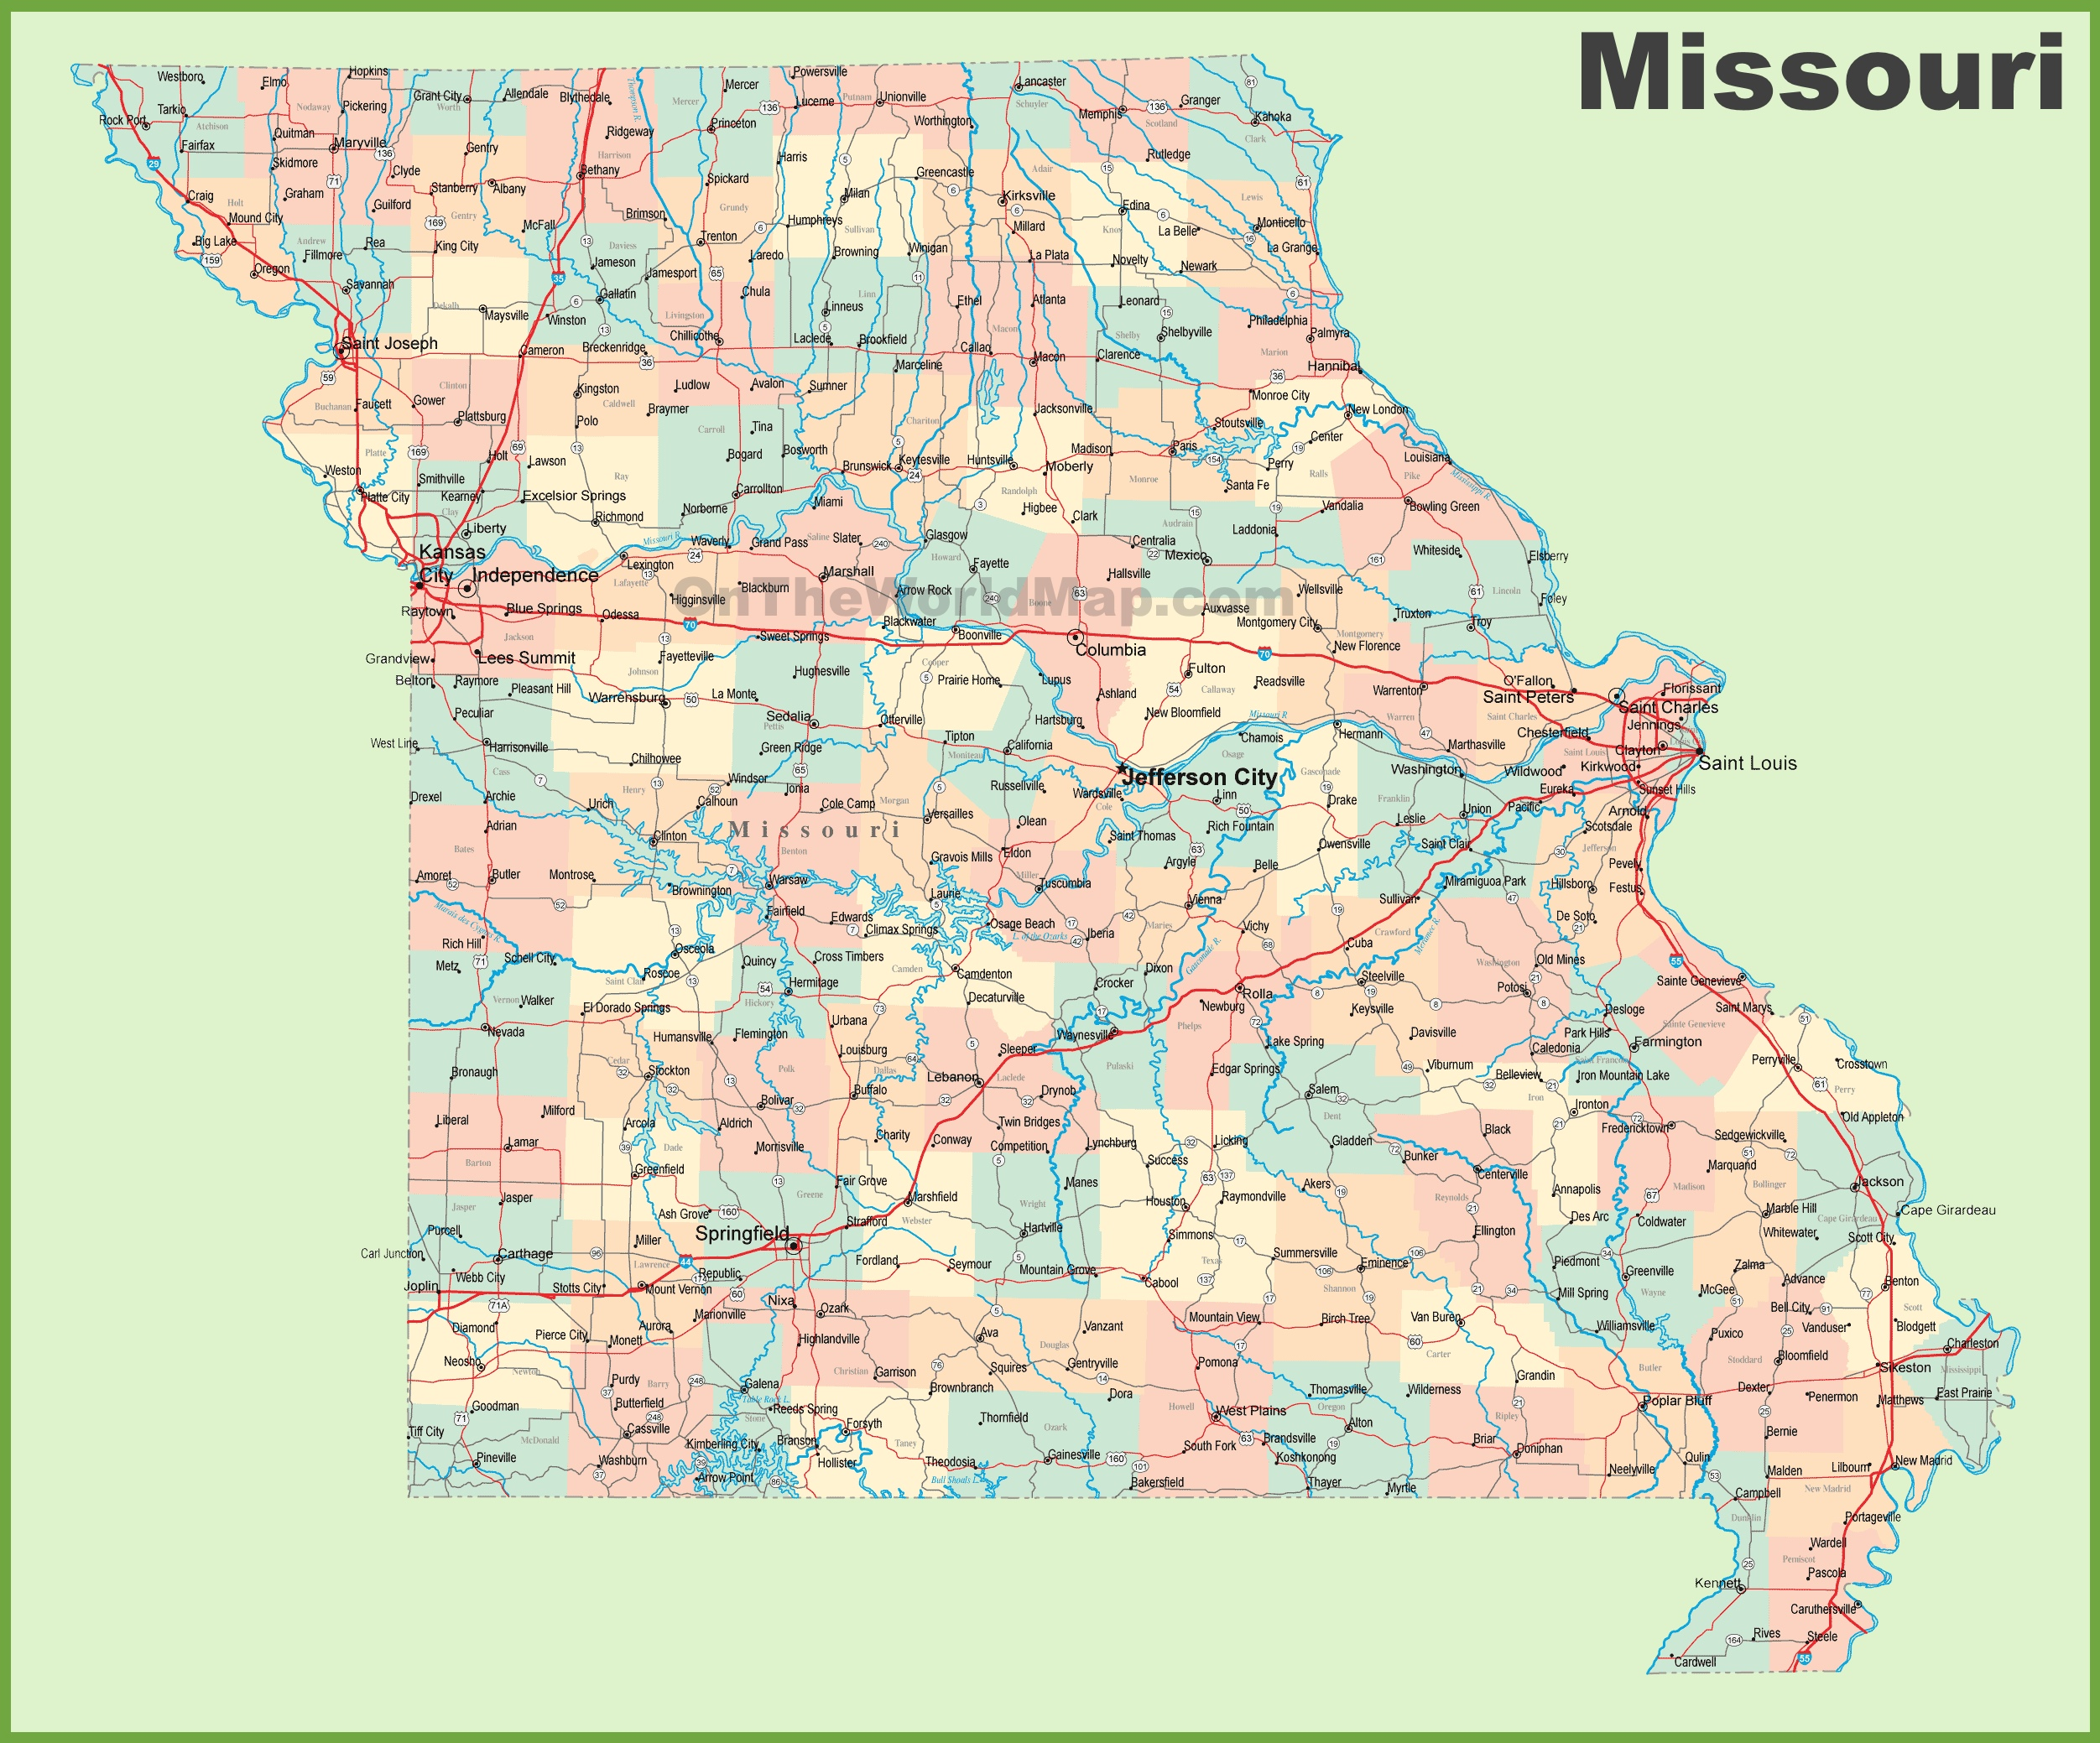 Missouri State Maps USA Maps Of Missouri MO - State of missouri map